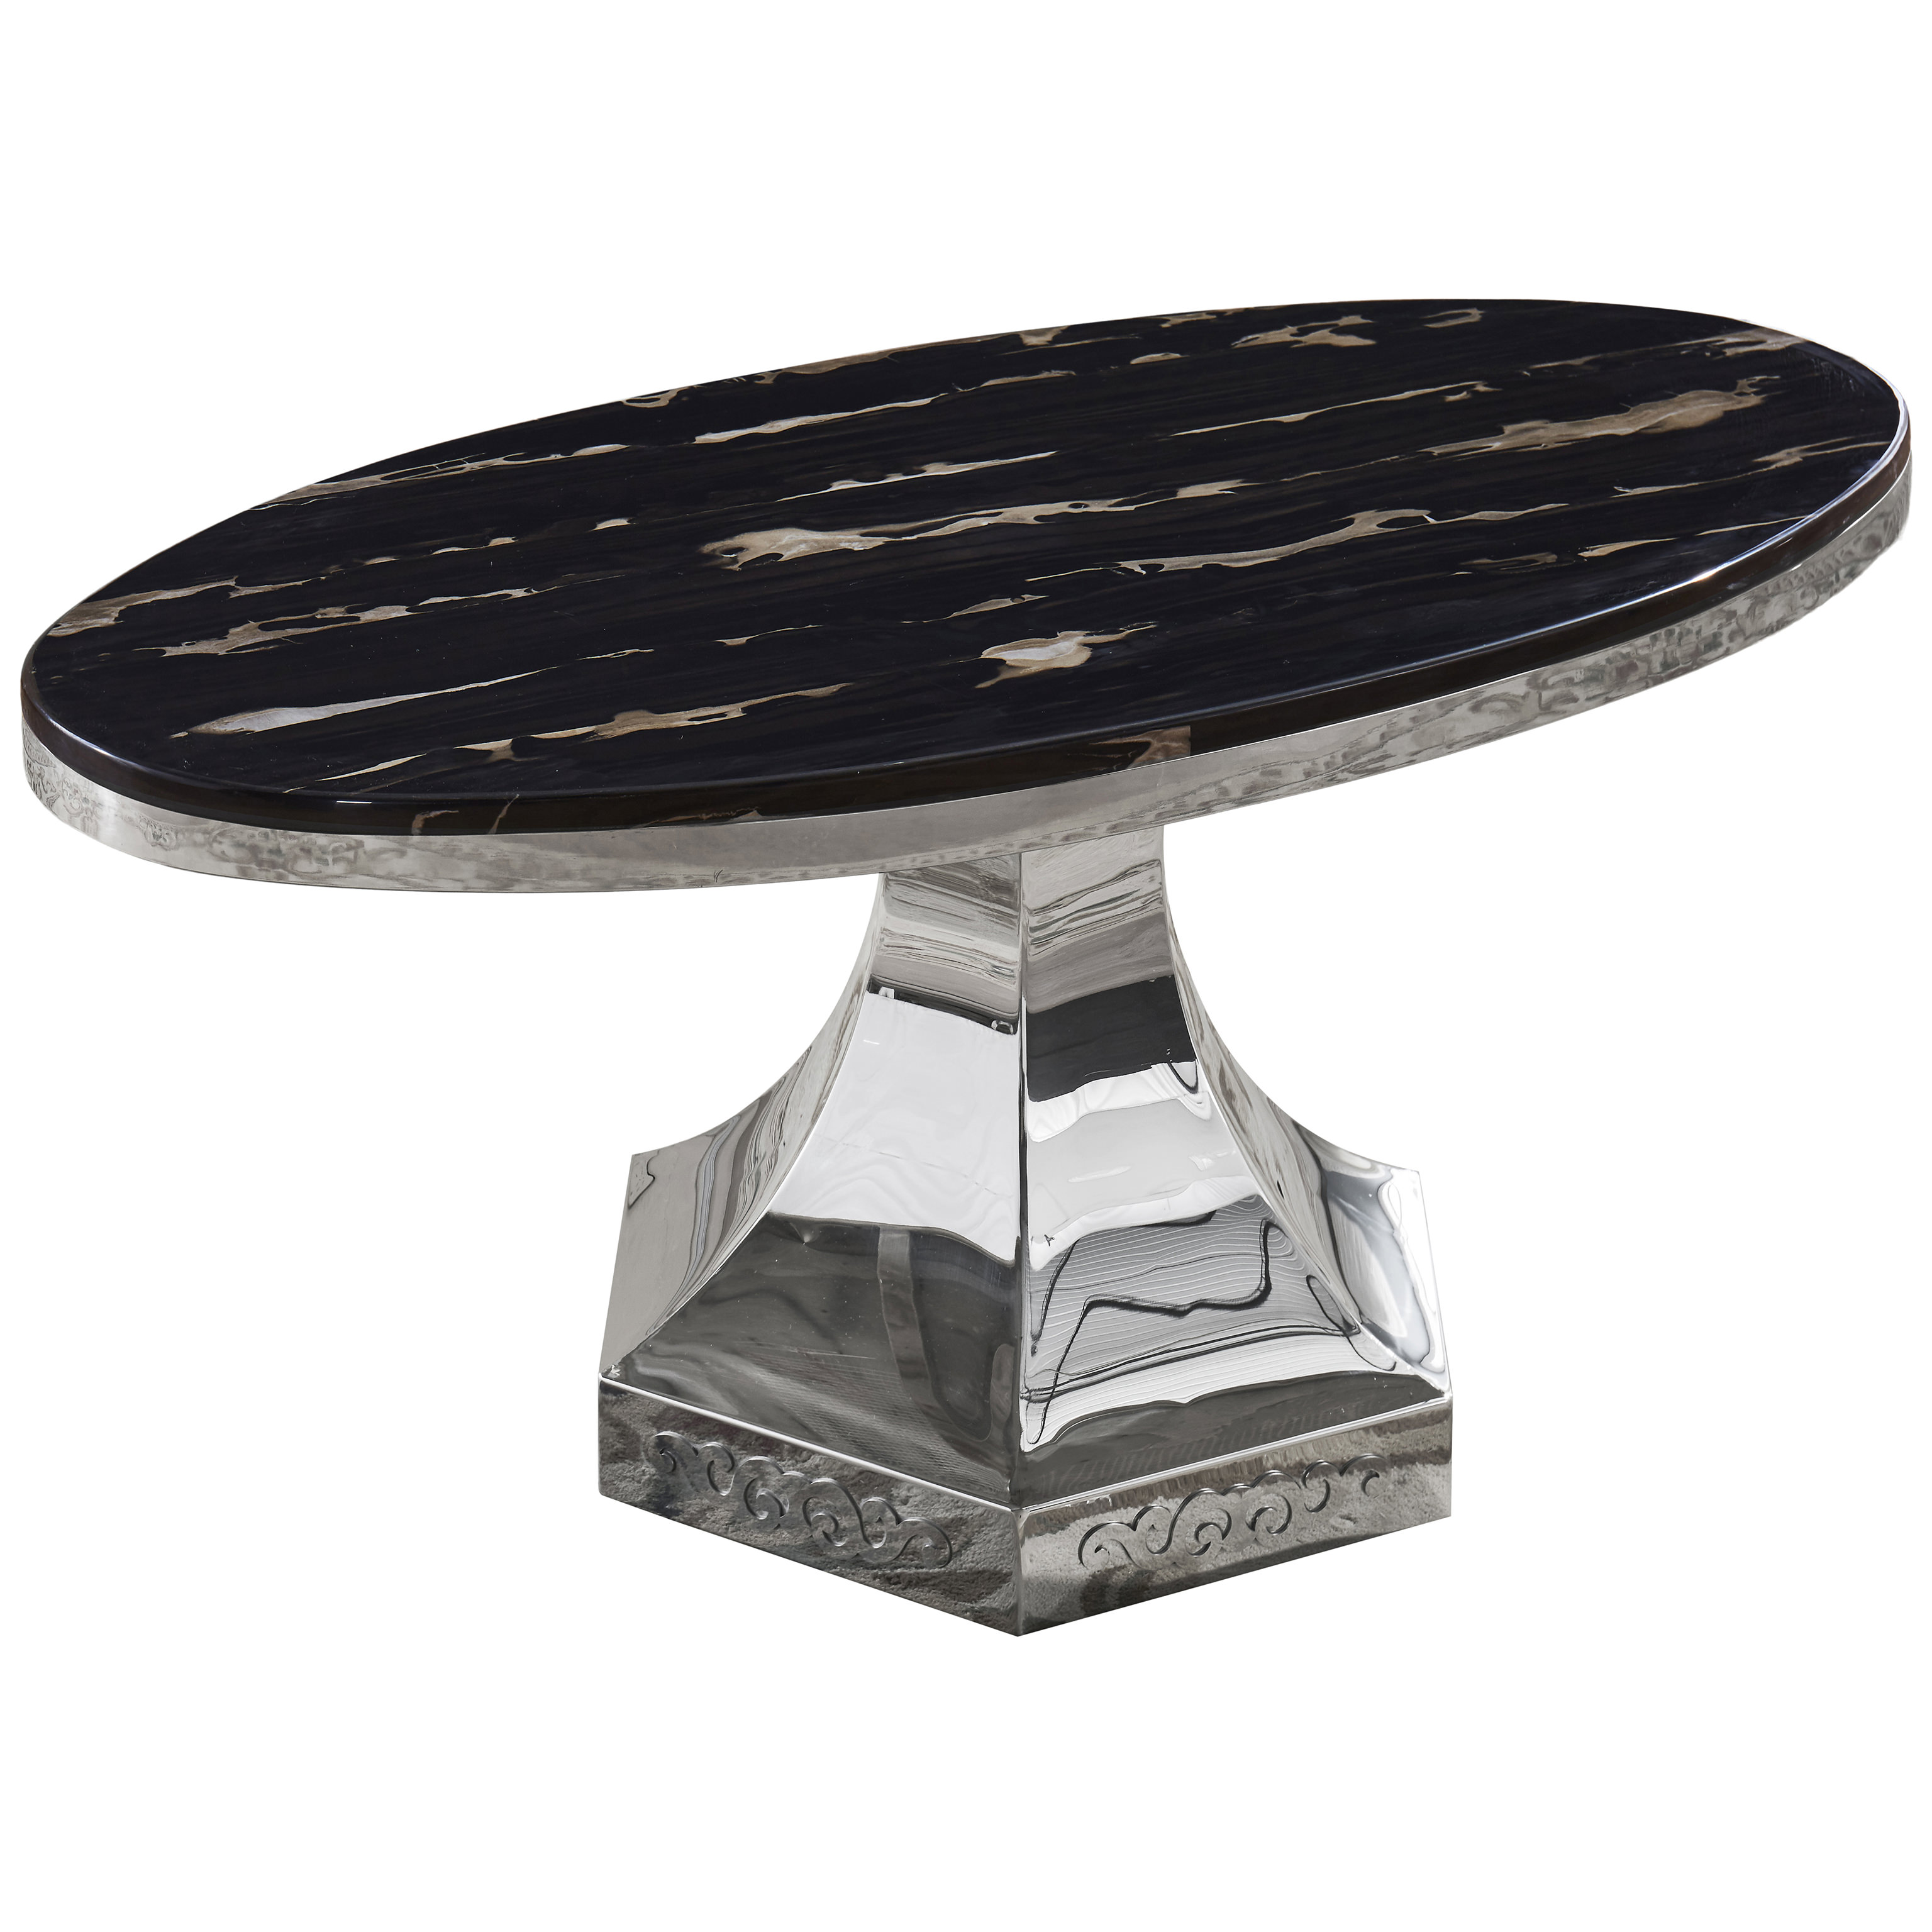 Details About Black Stone Marble Effect Oval Coffee Table